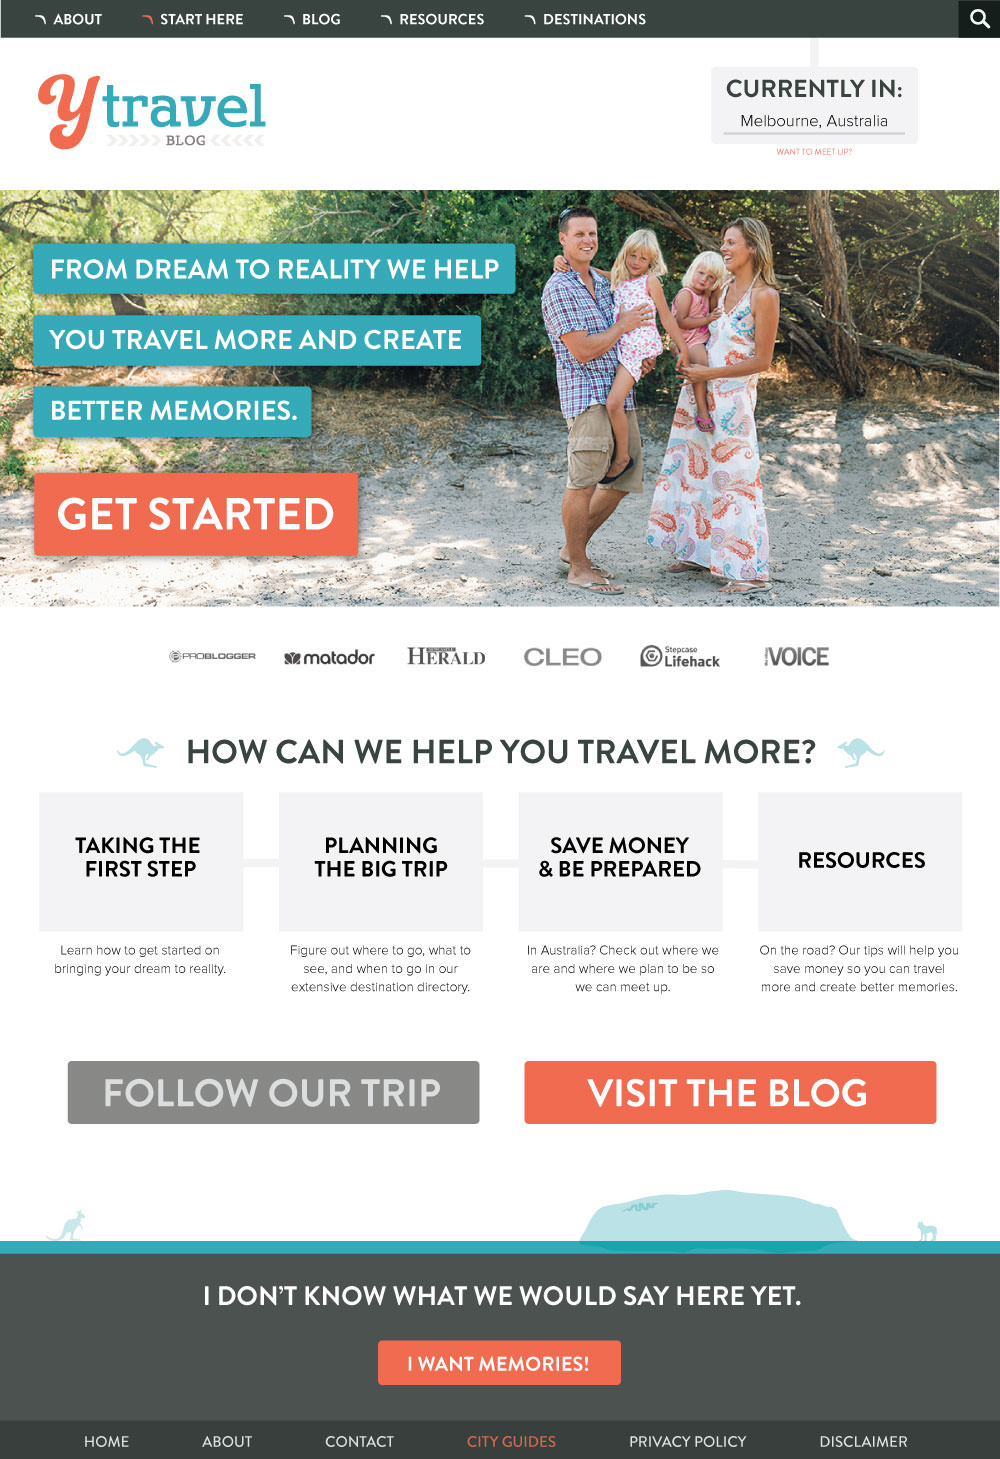 ytravelblog-comp-design-process